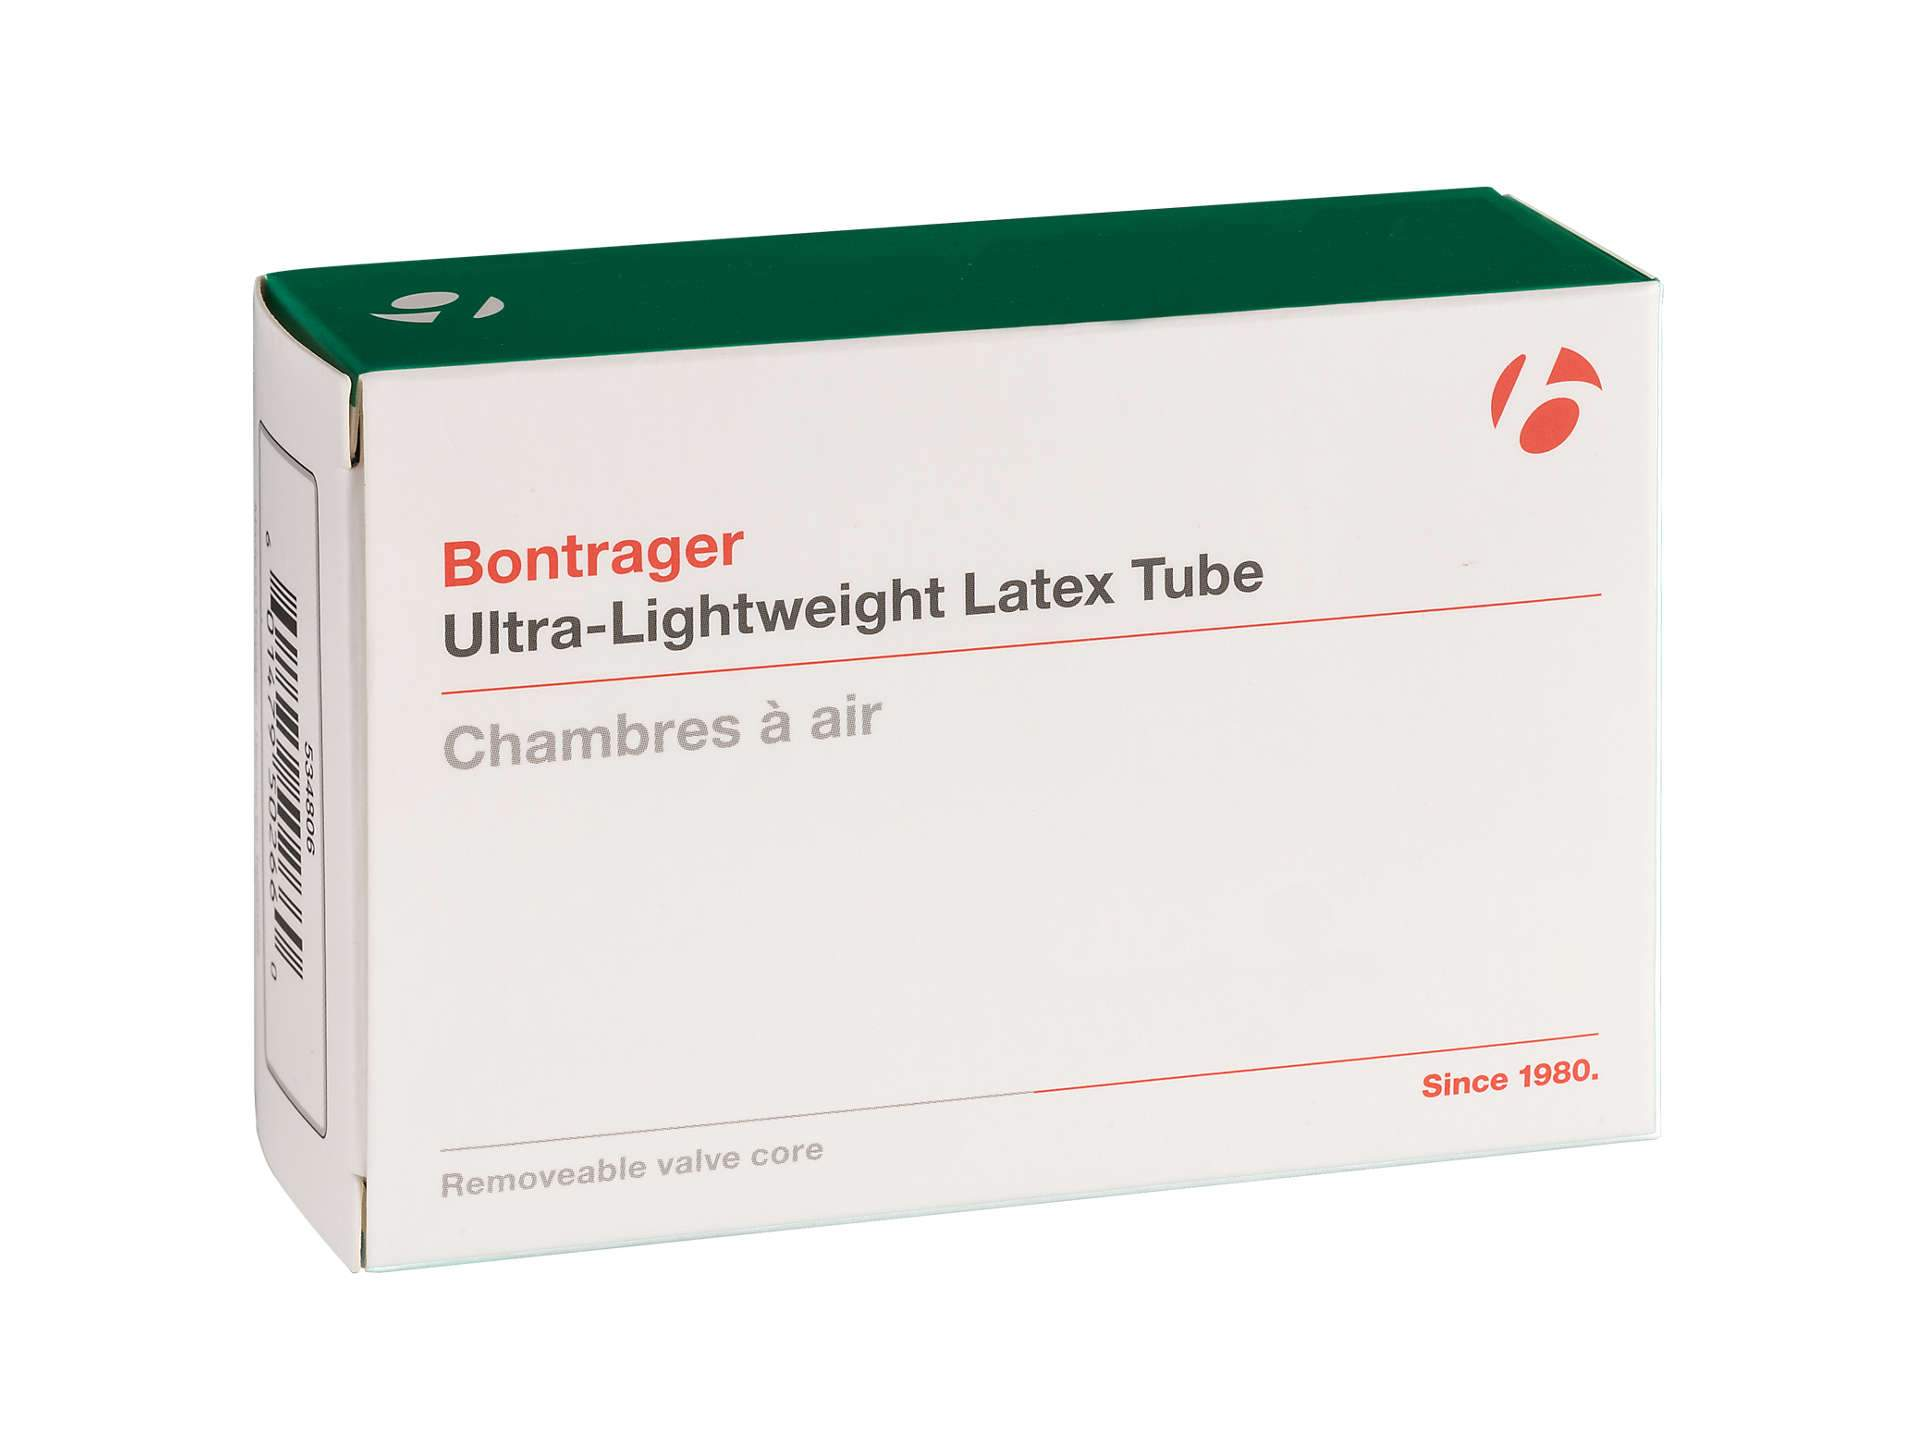 Bontrager Ultra-Lightweight Tube 700X25-30C (534806)